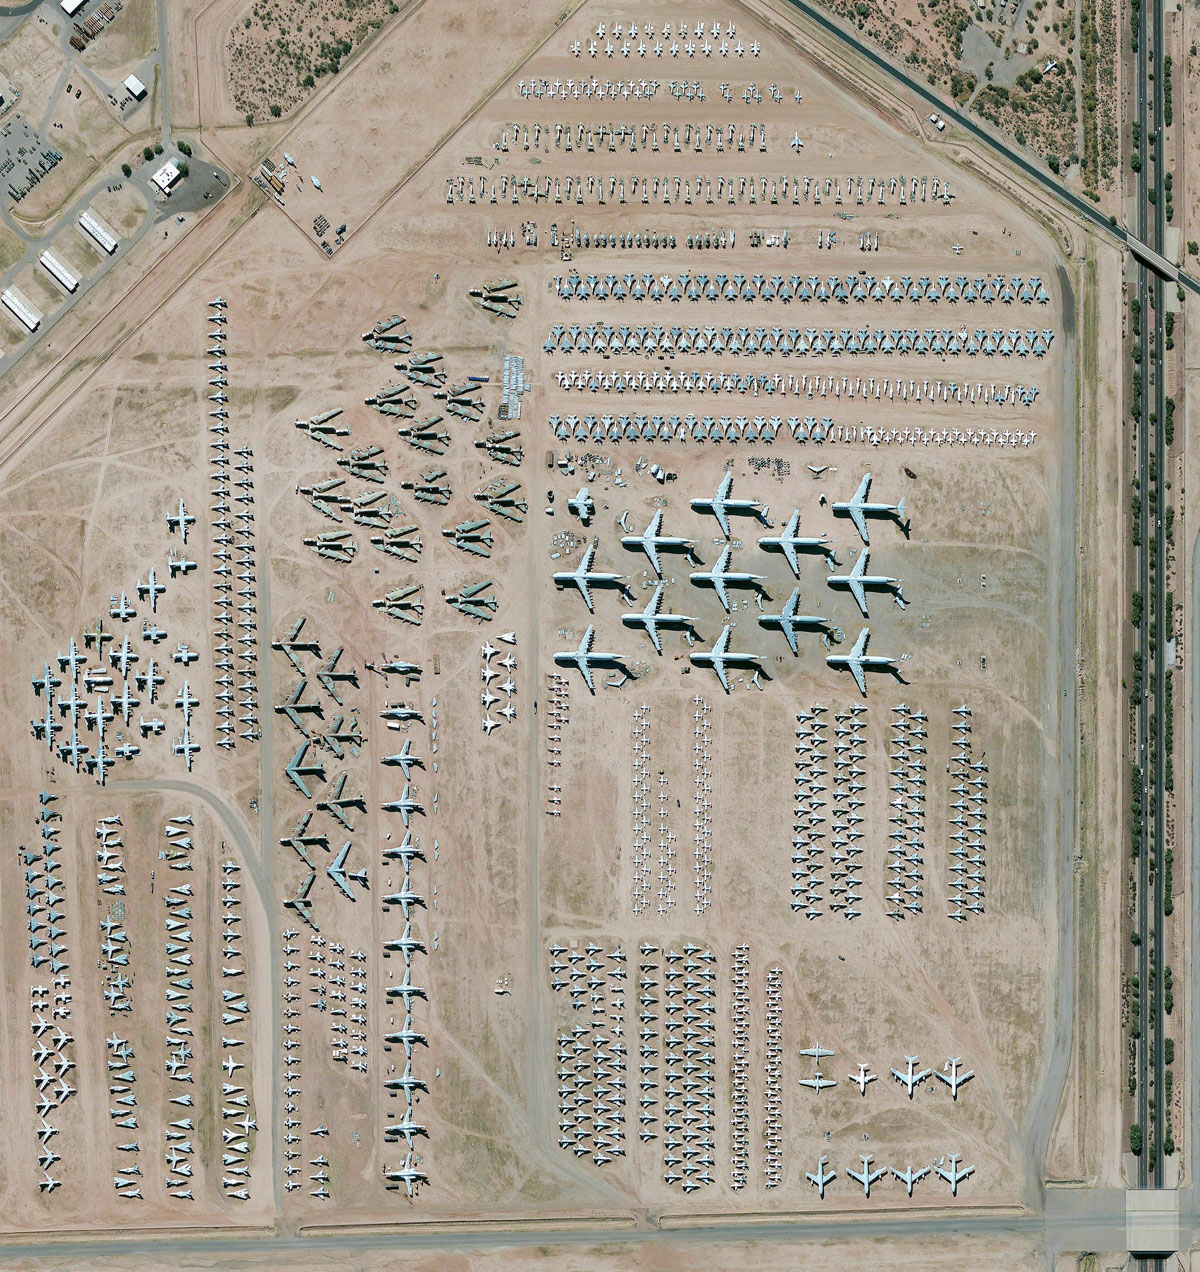 01 davis monthan air force base aircraft boneyard 15 High Res Photos That Will Give You a New Perspective on Earth